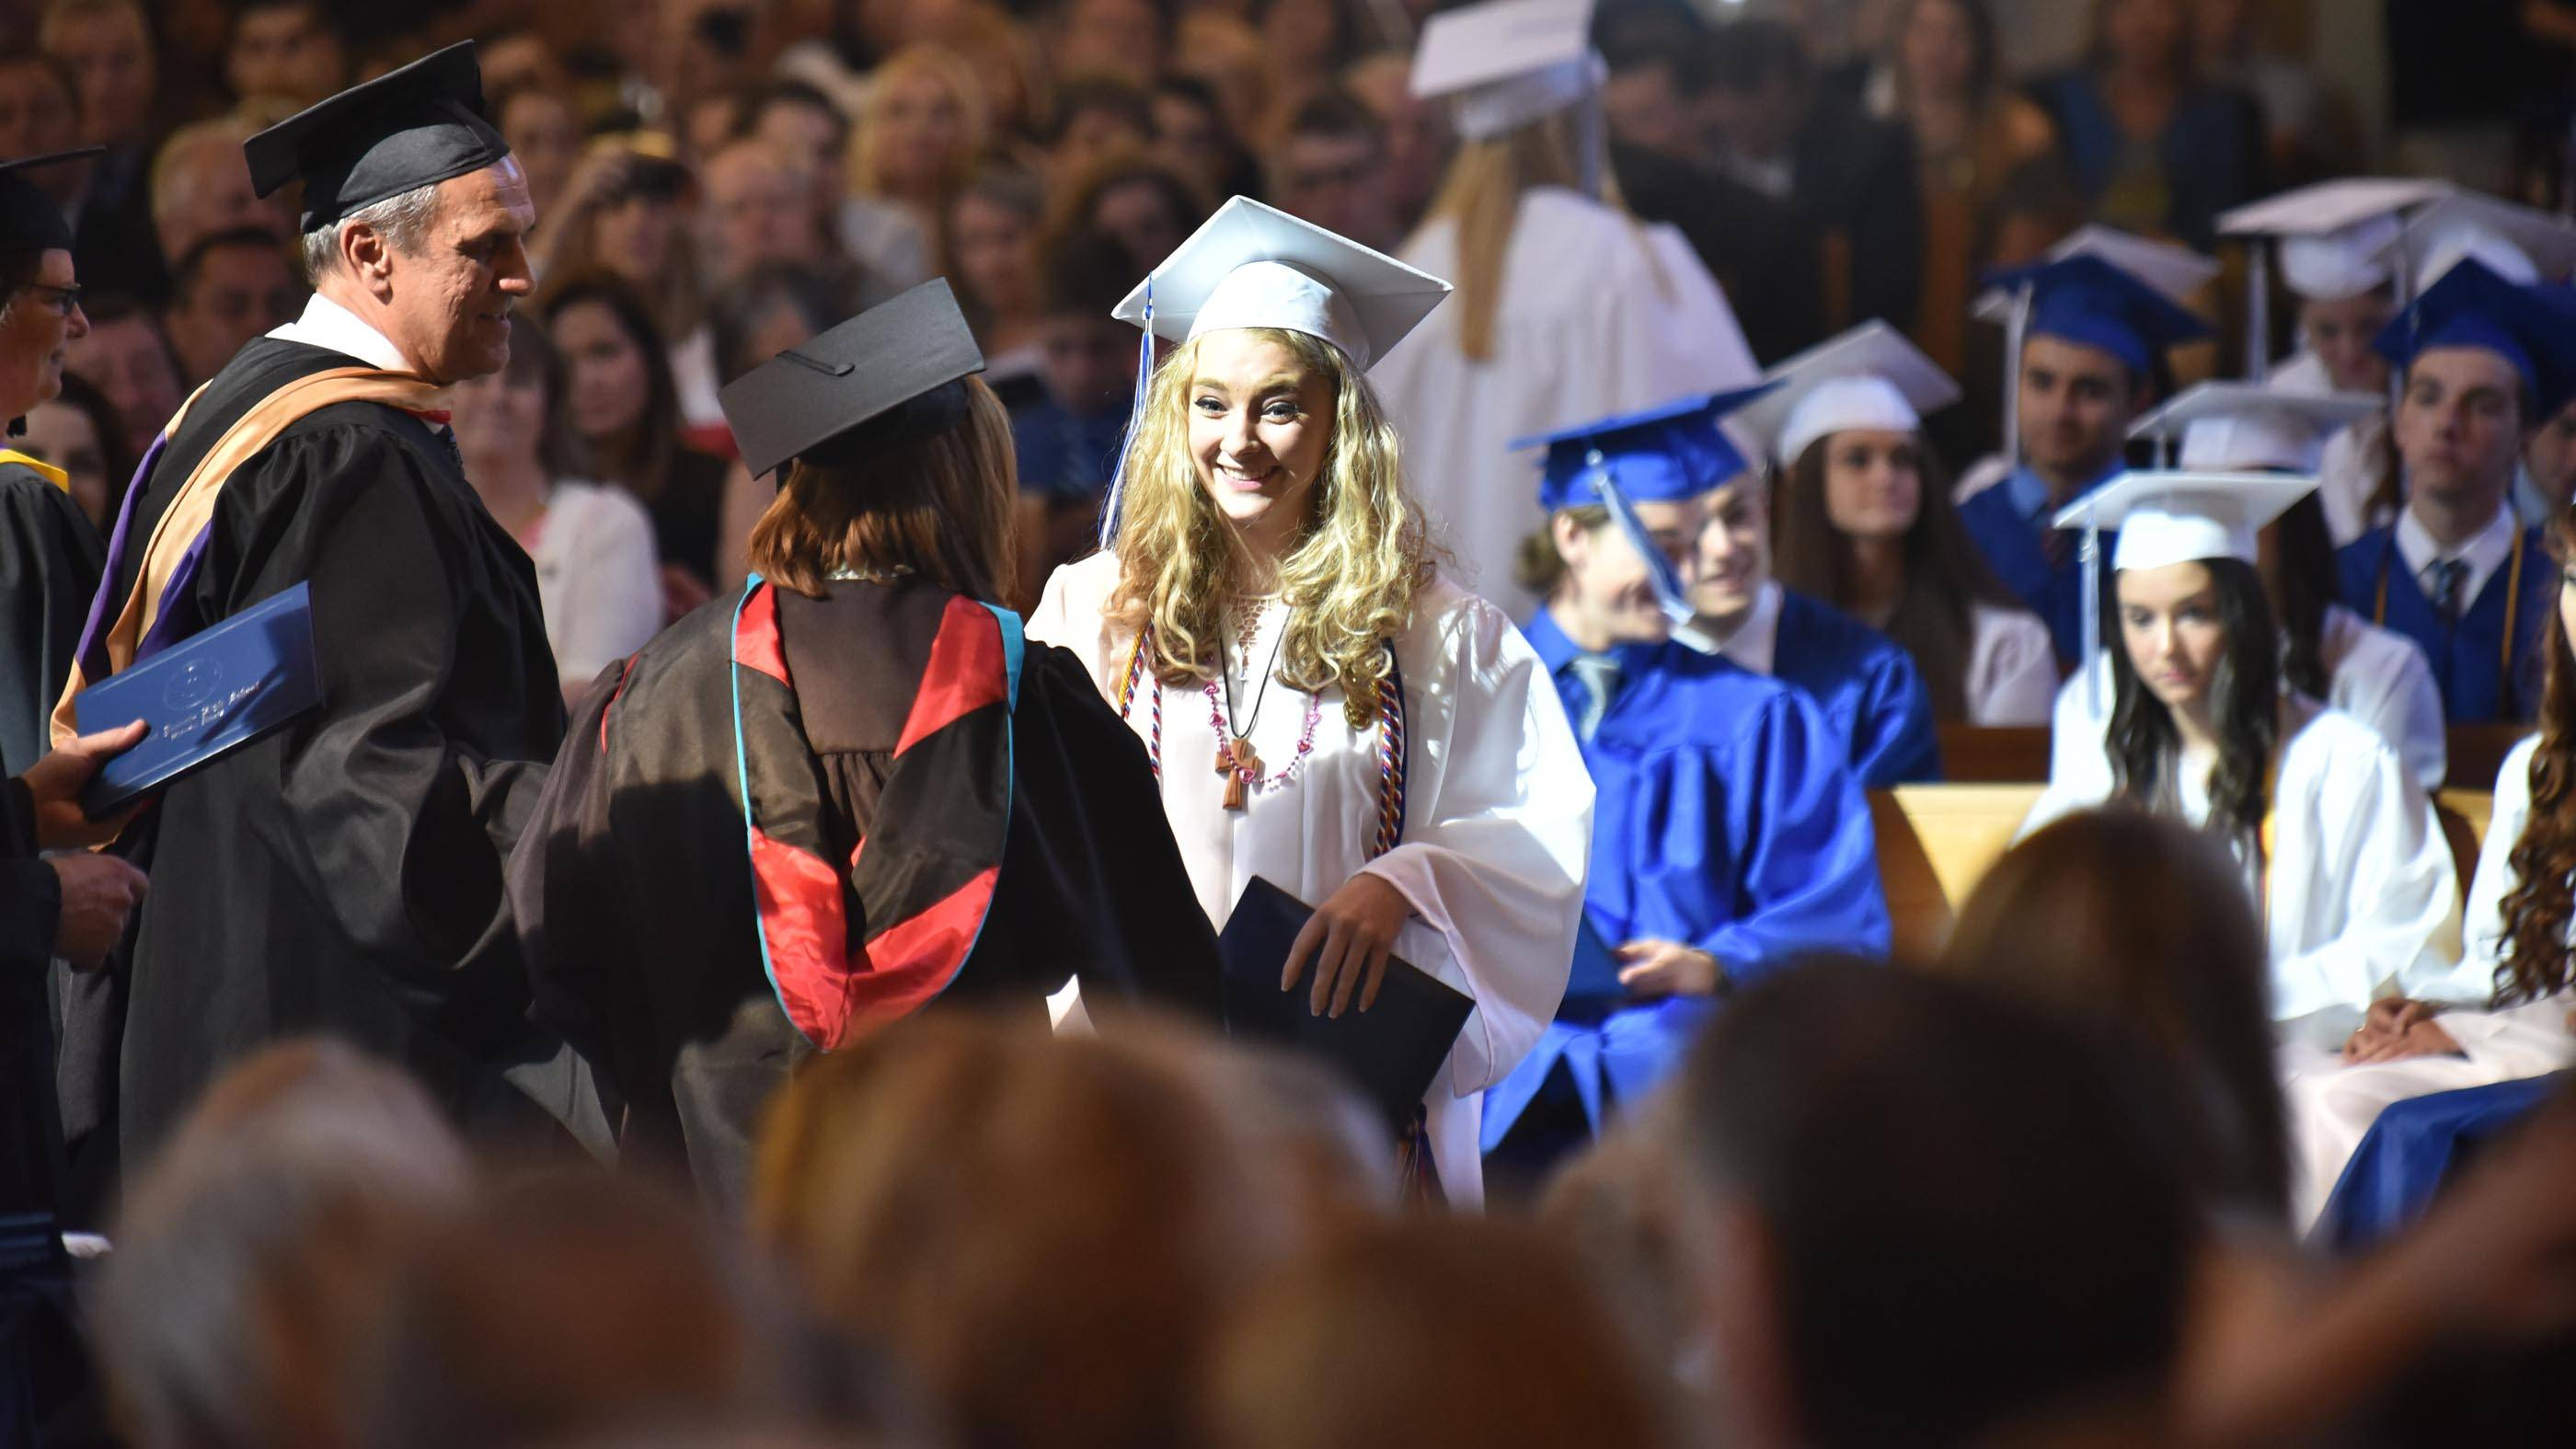 Graduate Kathleen Kleve smiles as she accepts her diploma at the St. Francis High School graduation Sunday at St. John Neumann Church in St. Charles.